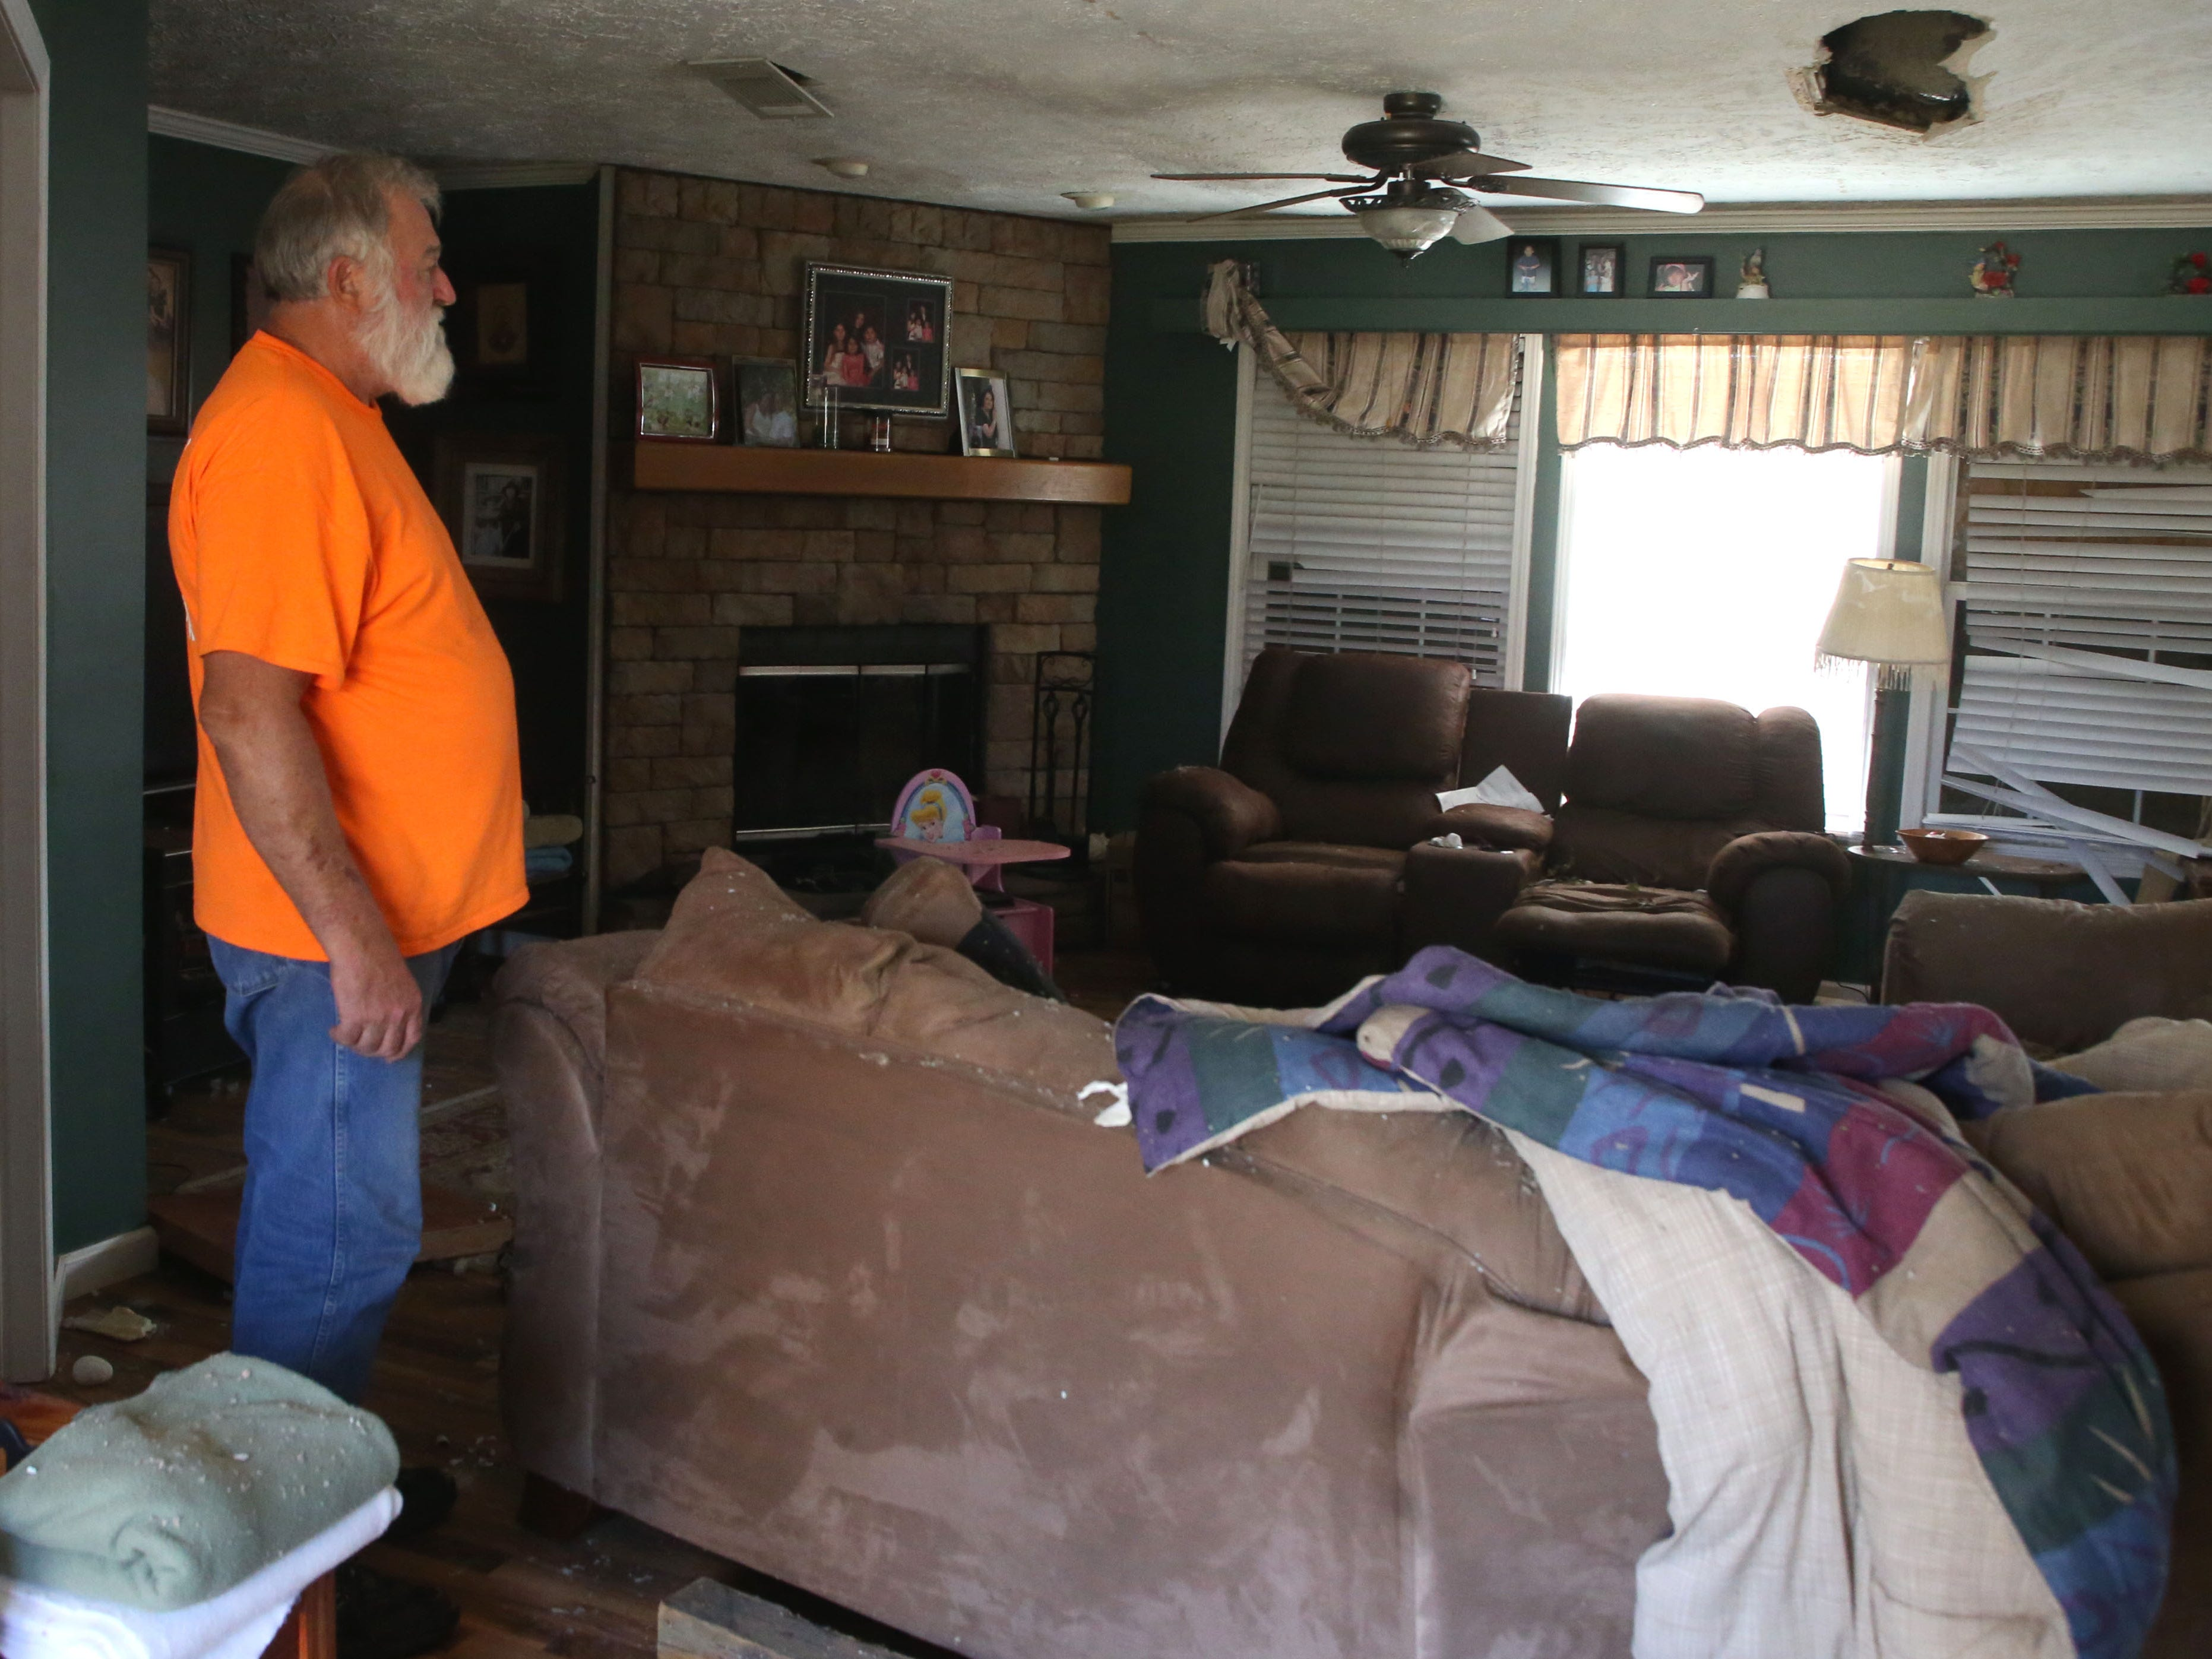 Eugene Radney, grandfather of Sarah Radney, an 11 year old girl who died during Hurricane Michael in Donalsonville, Ga., revisits his home where his granddaughter died on Thursday, Oct. 18, 2018.